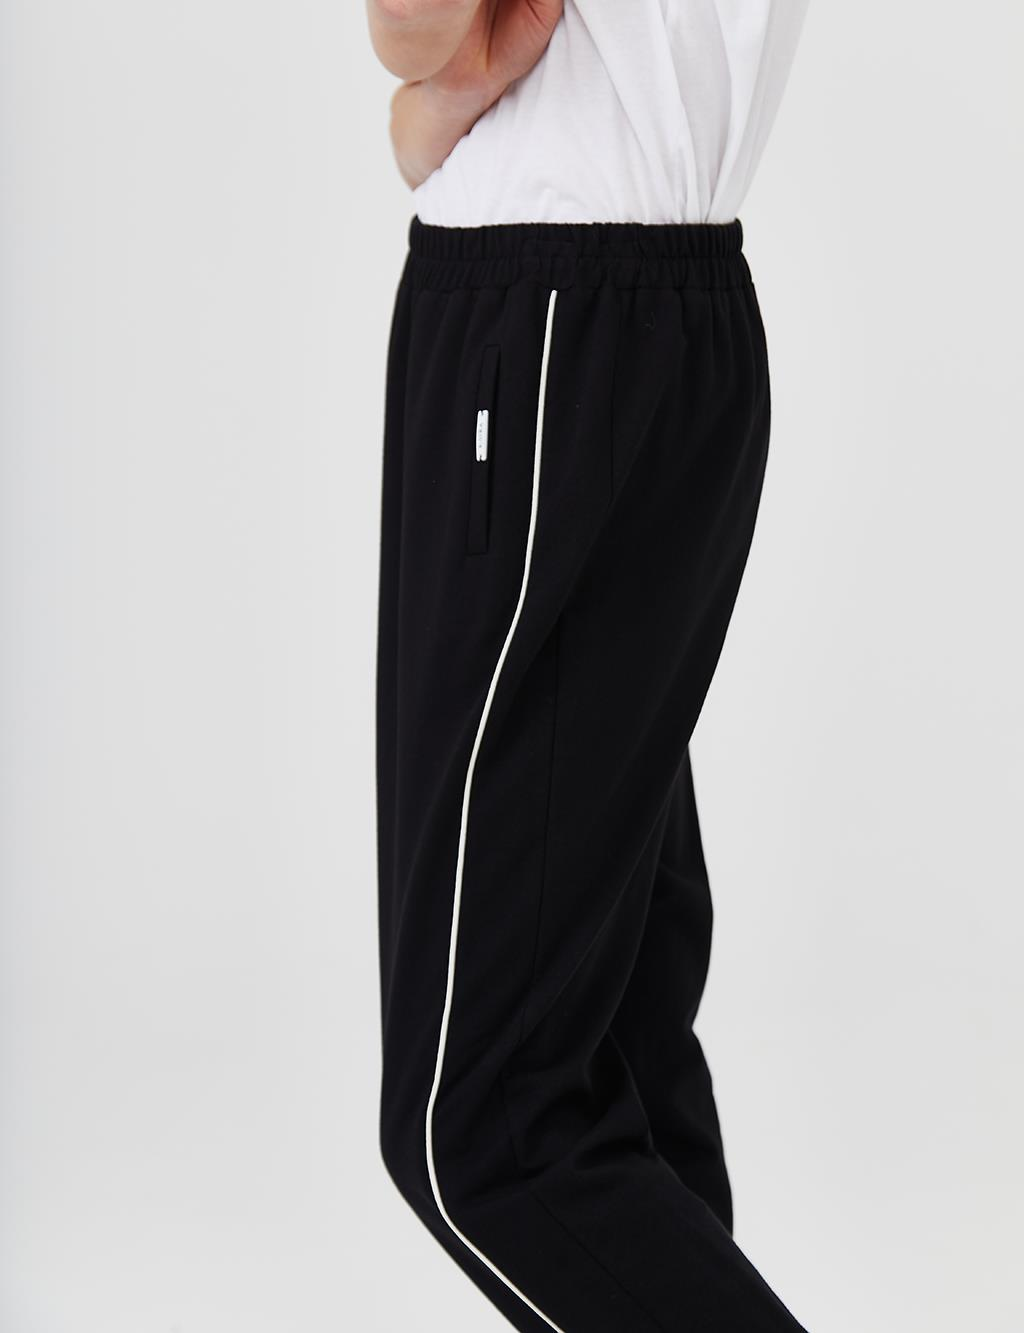 Striped Sweatpants B21 19020 Black